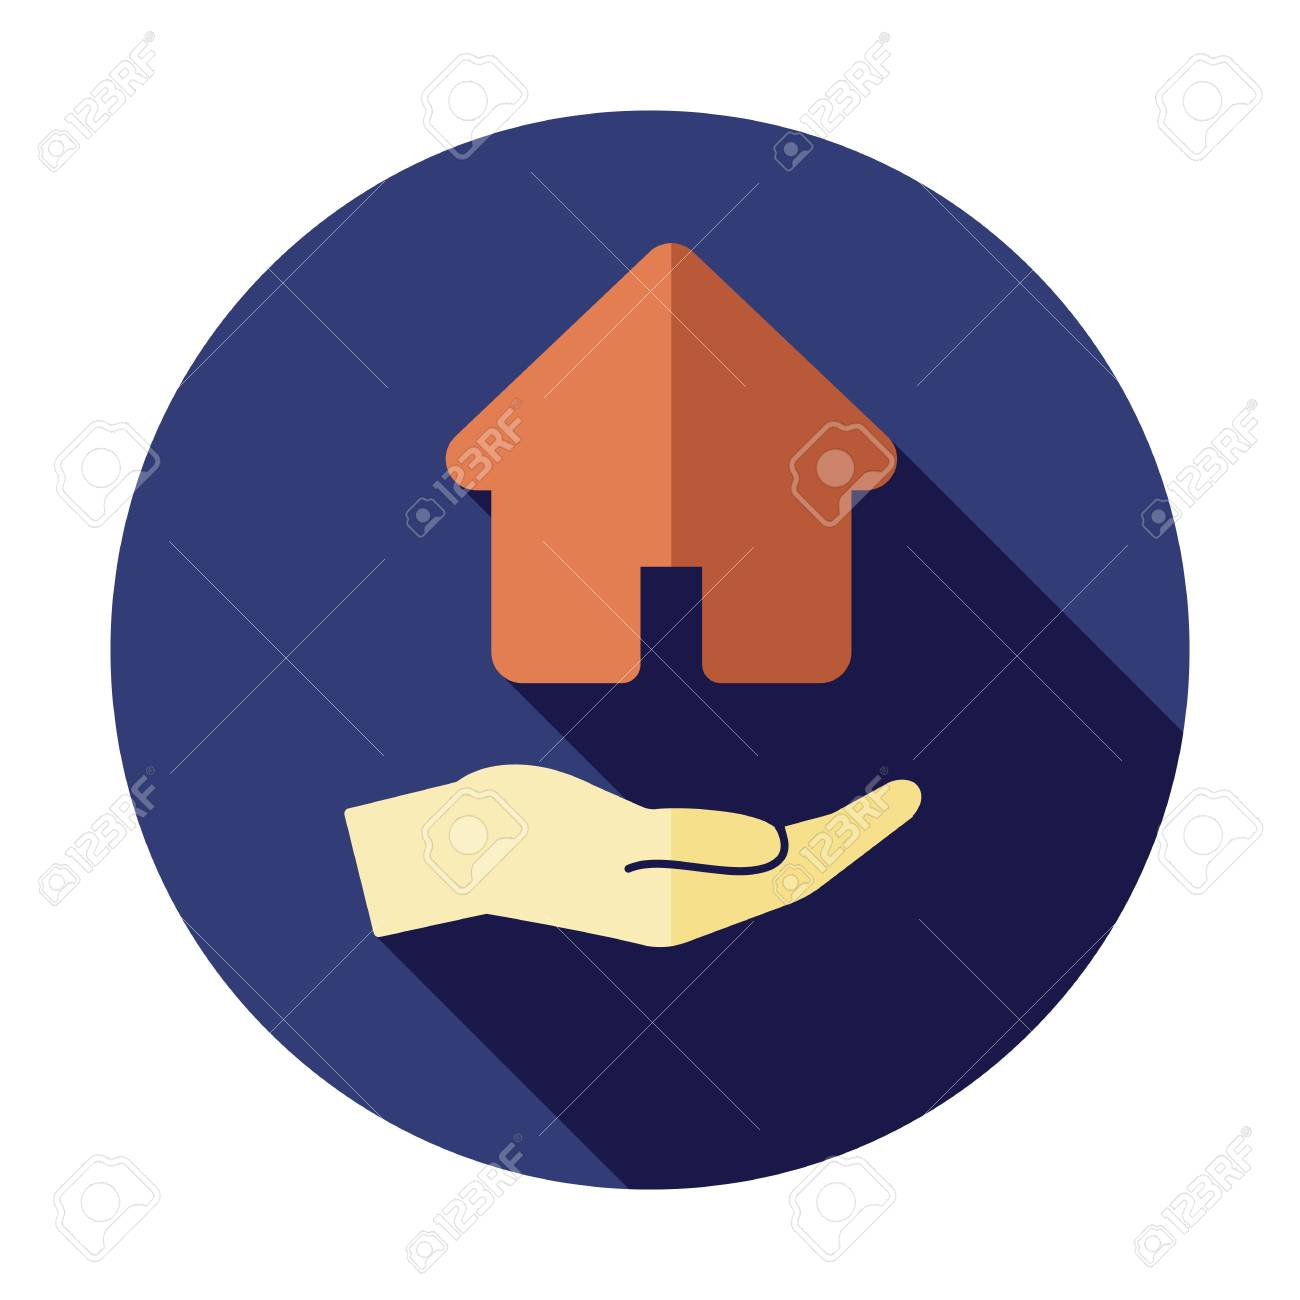 Business, buy, finance, hand, home, house icon, home mortgage, loan vector, real estate symbol - 127520772